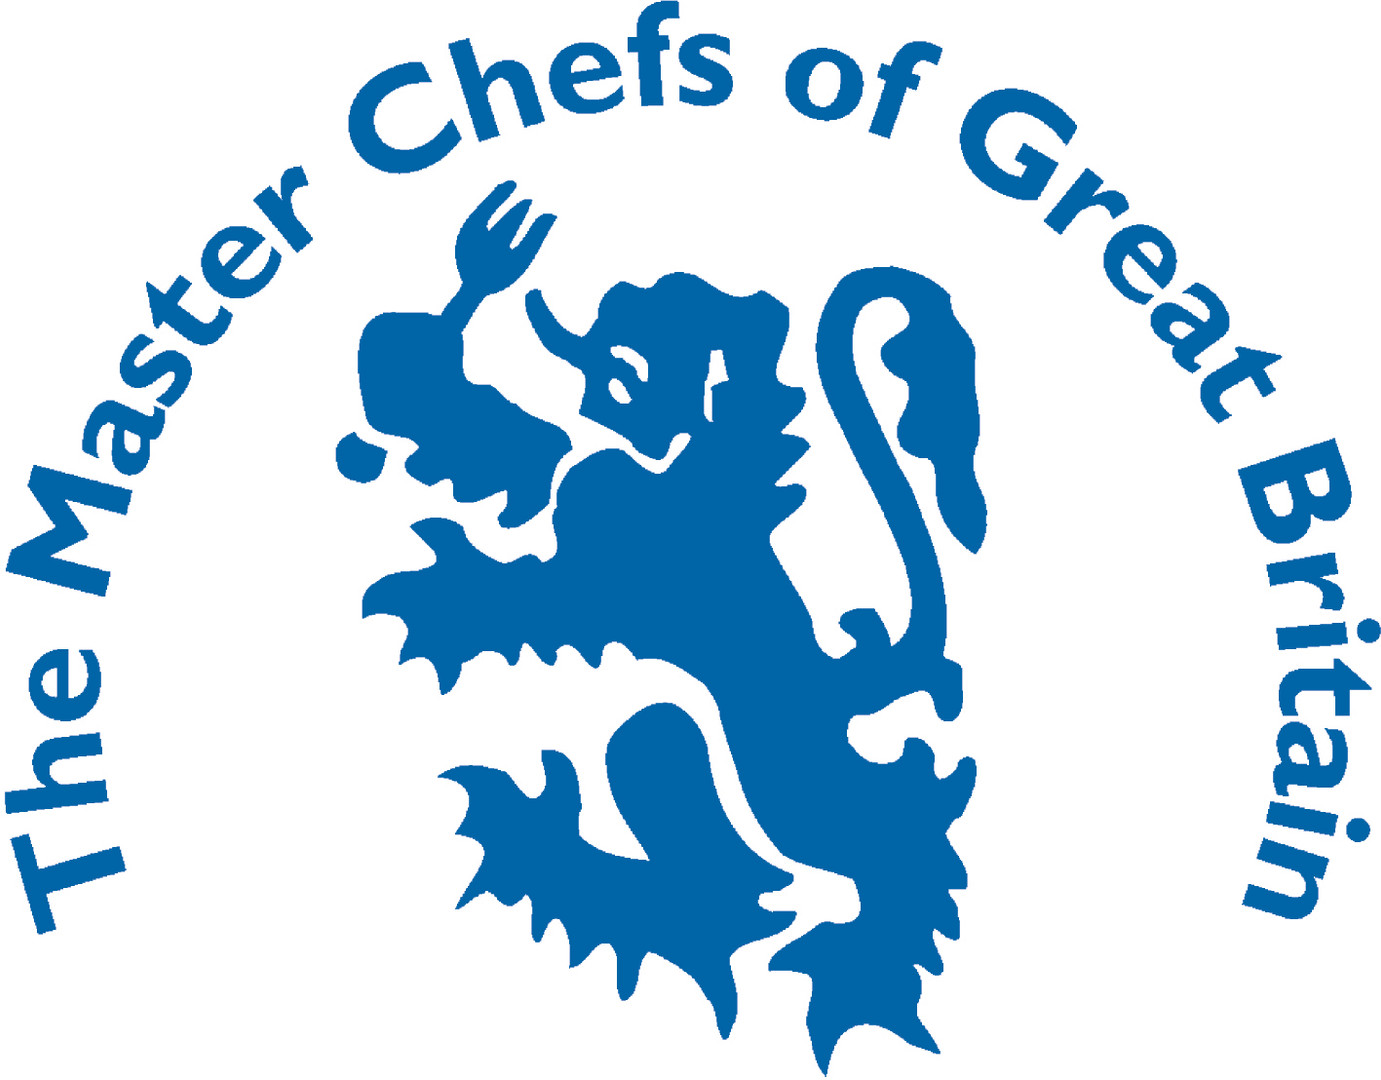 Master Chefs of Great Britain